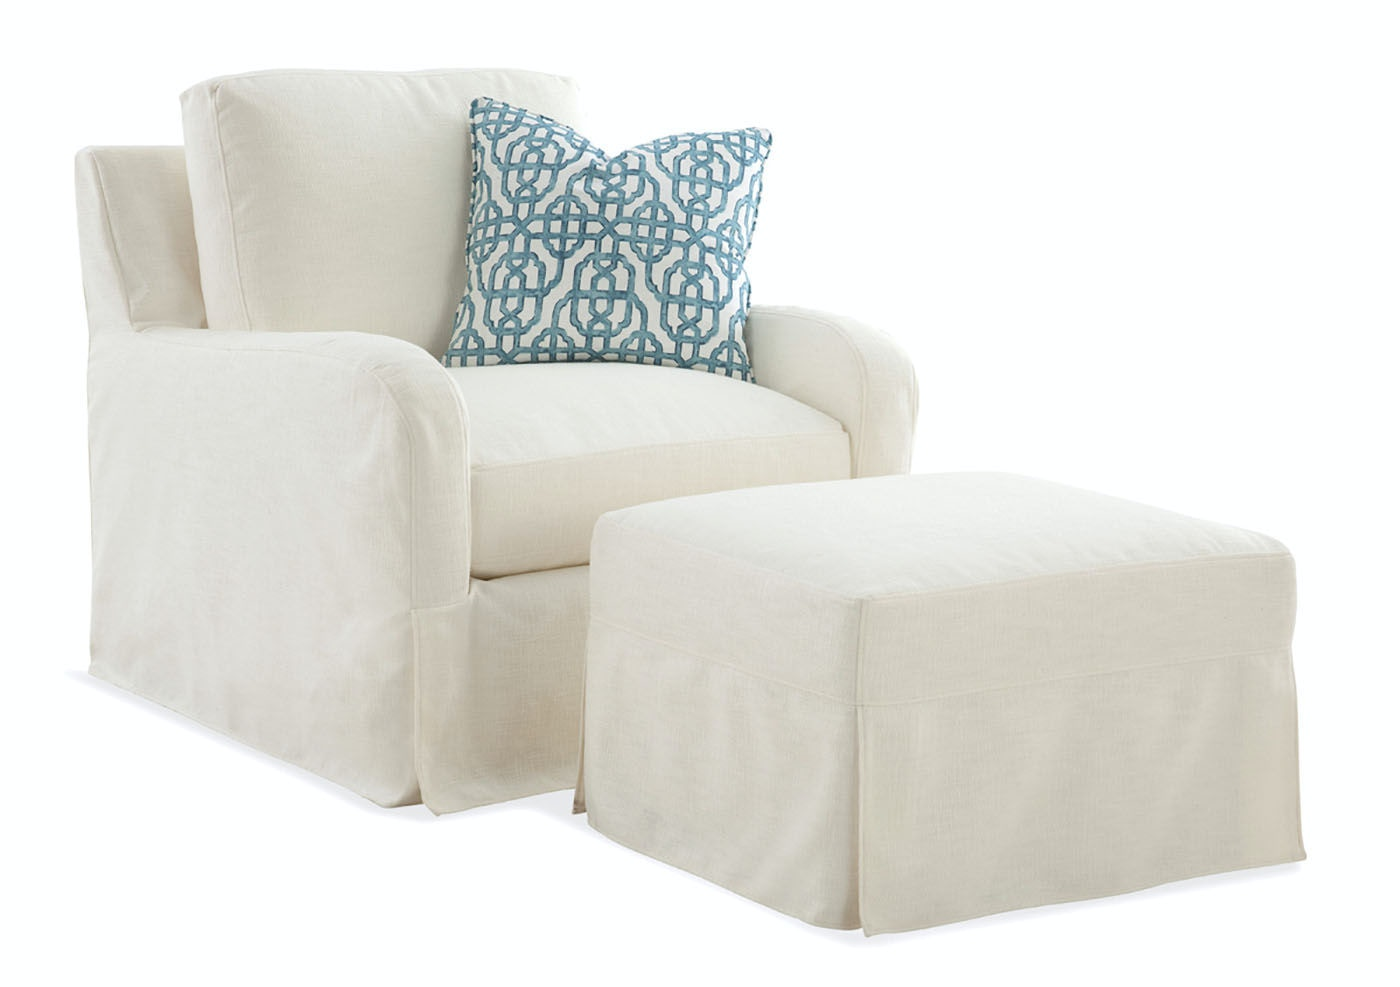 Halsey Slip Covered Chair 5745-001XP